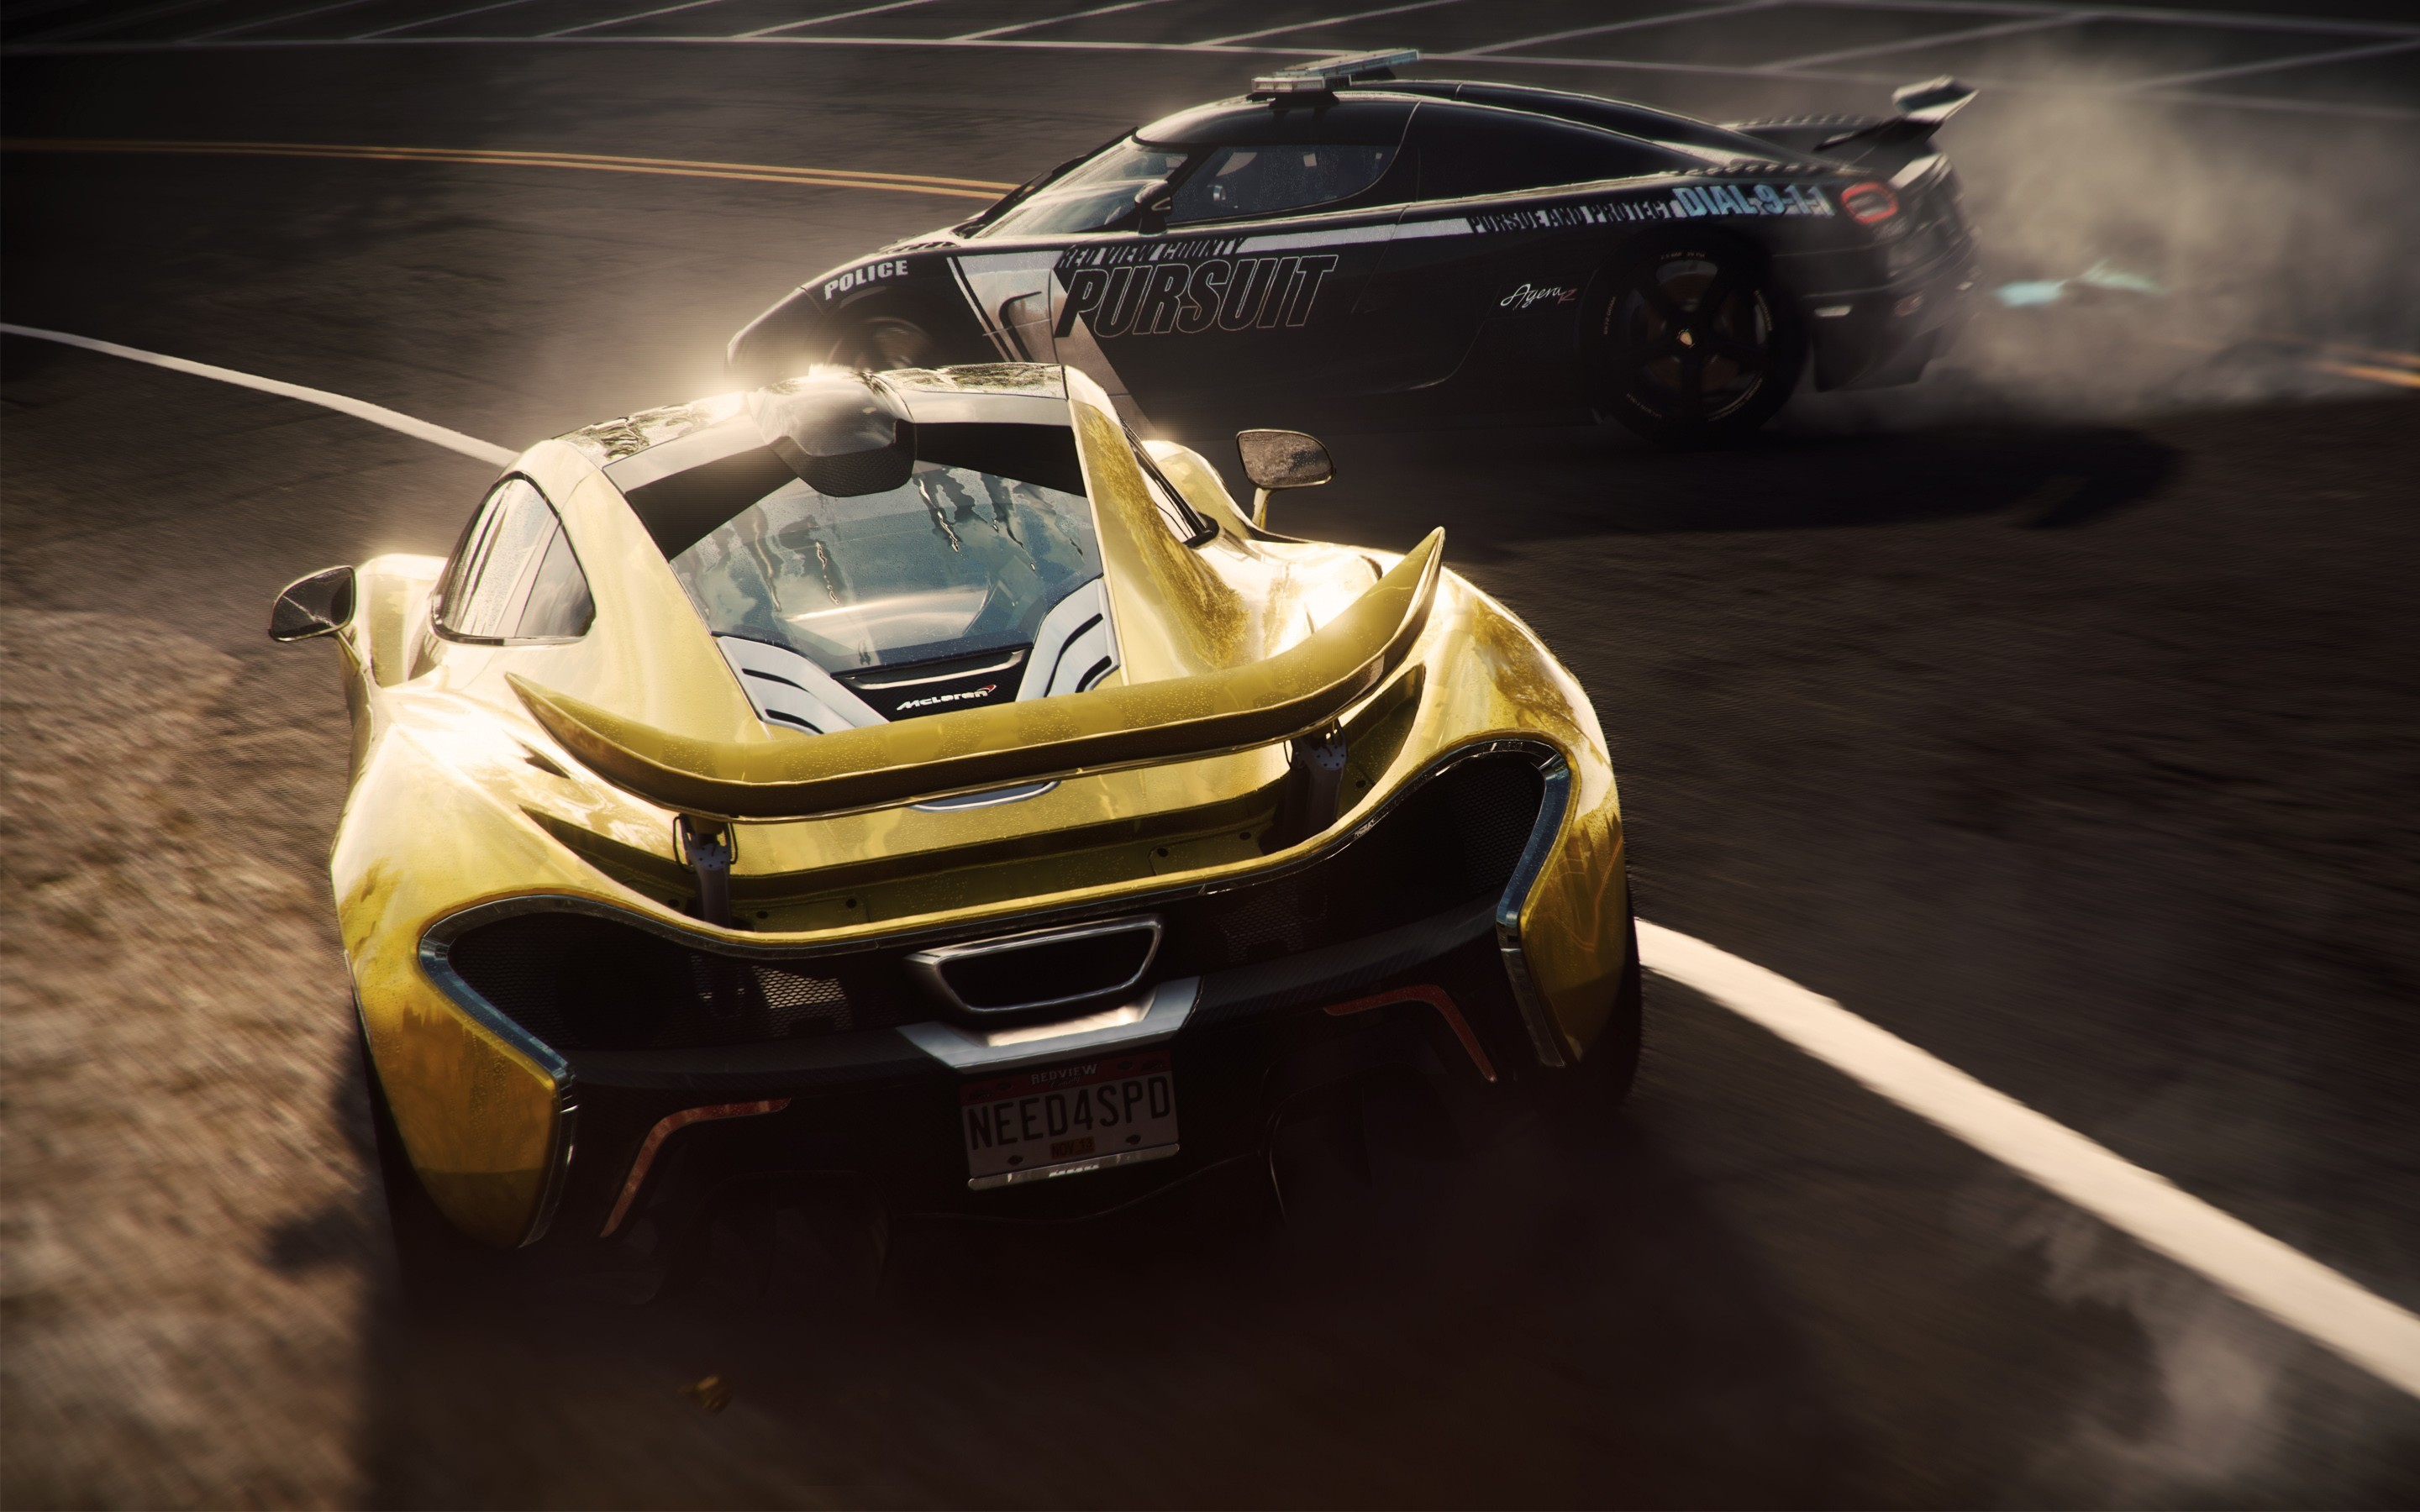 2880x1800 McLaren, McLaren P1, Koenigsegg, Koenigsegg Agera, Need For Speed: Rivals,  Video Games, Agera R Wallpapers HD / Desktop and Mobile Backgrounds